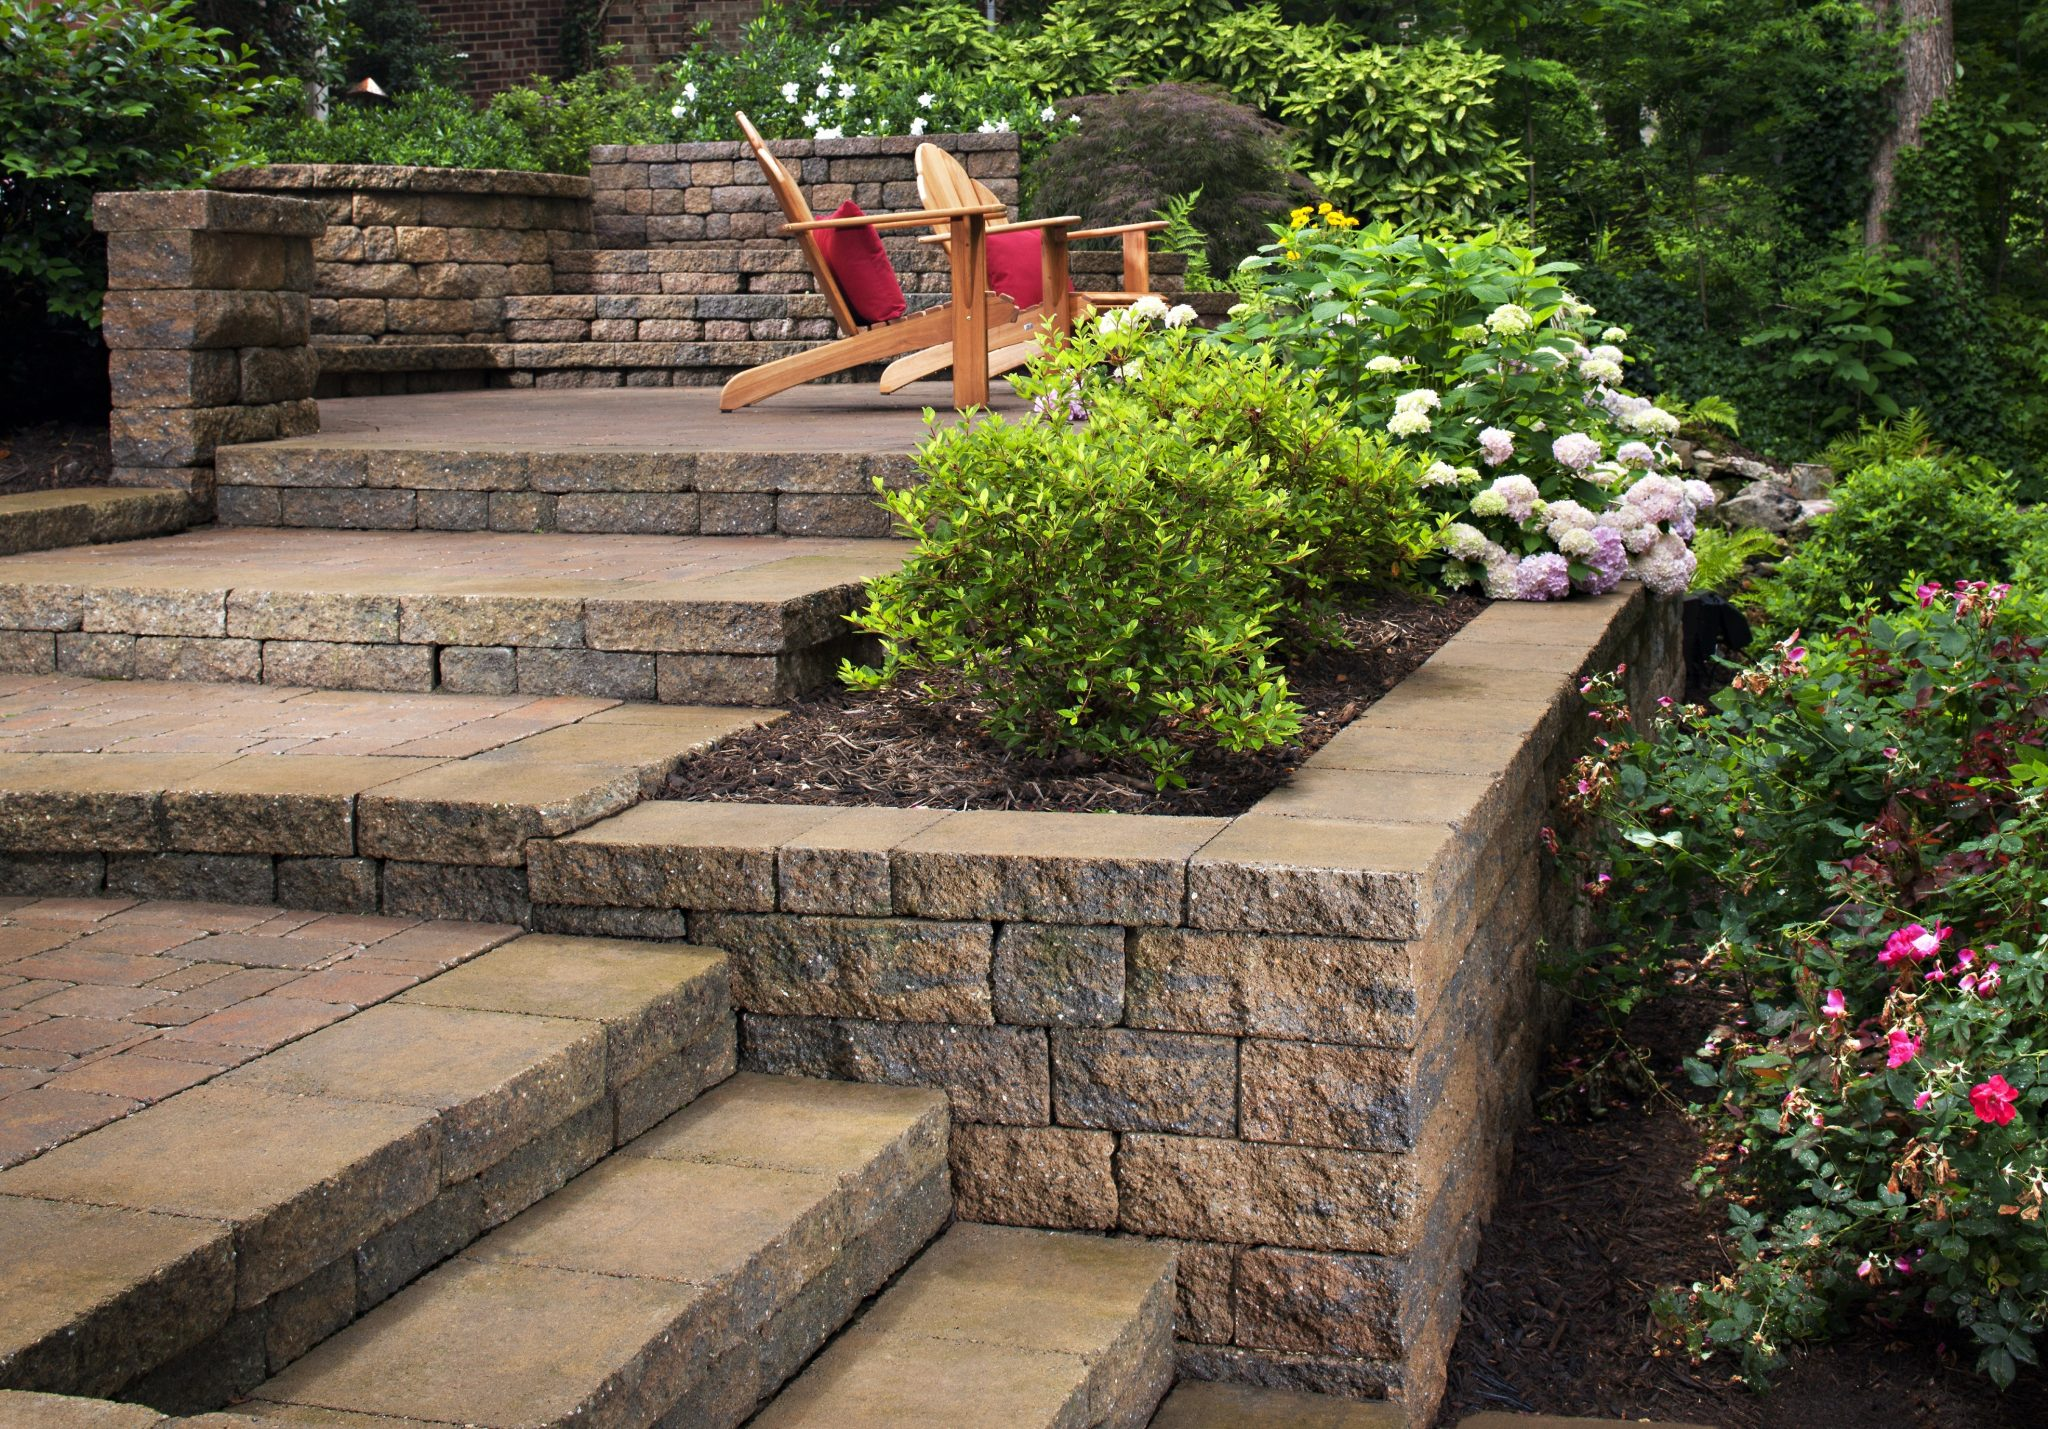 Landscaping Ideas For Hillside: Backyard Slope Solutions ... on Sloped Yard Ideas id=67453